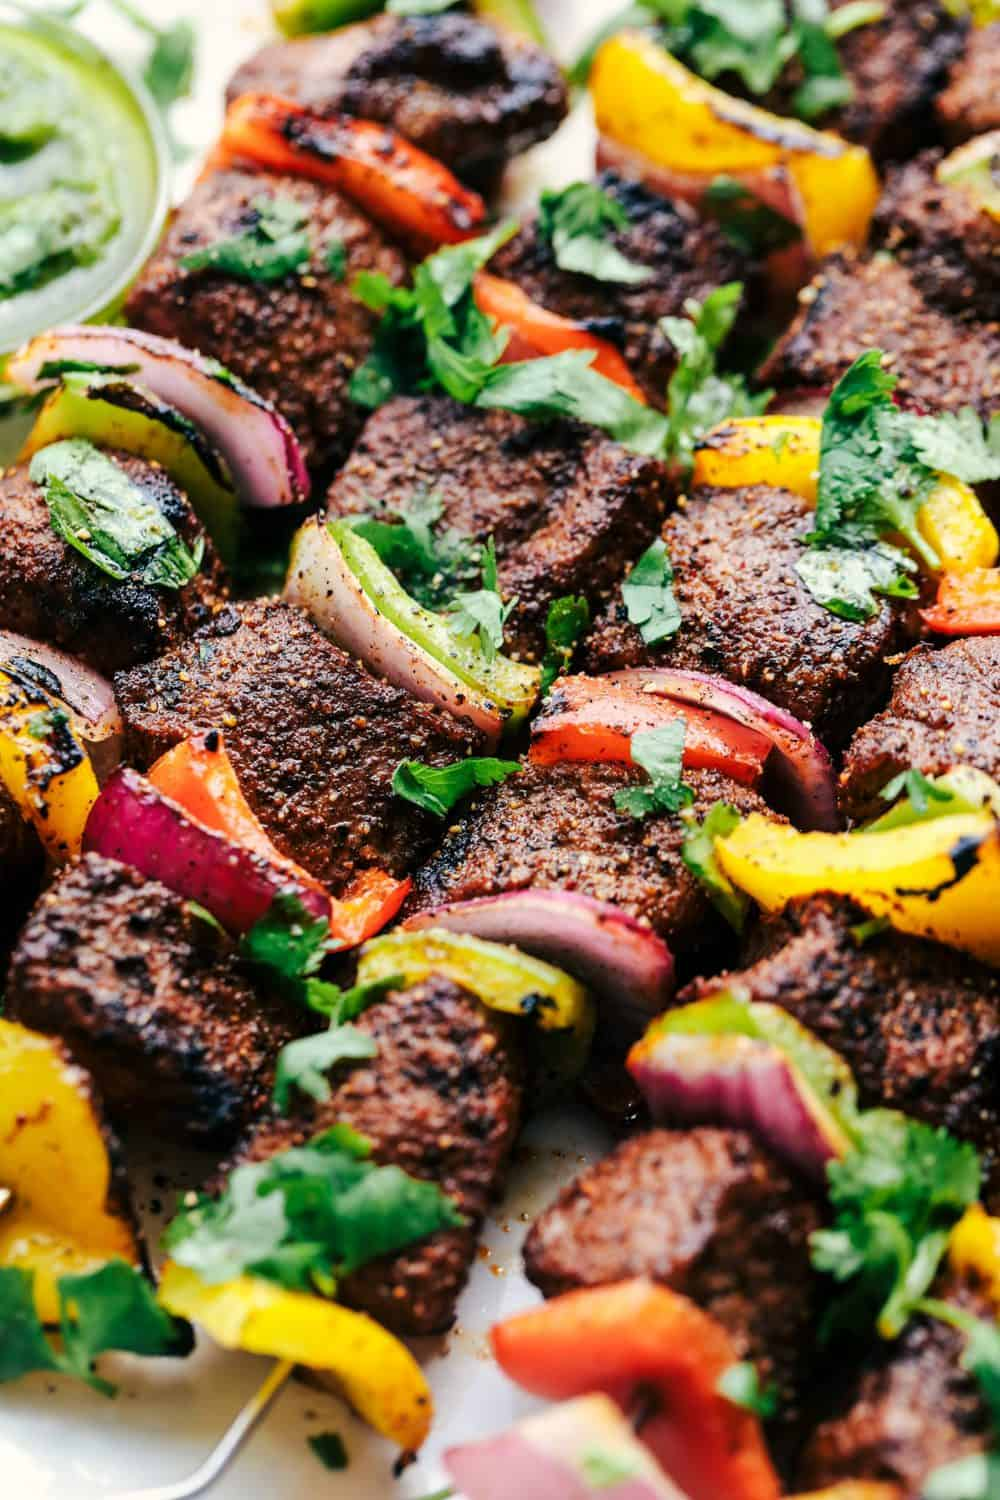 Grilled Steak Fajita Skewers with Avocado Chimichurri 4